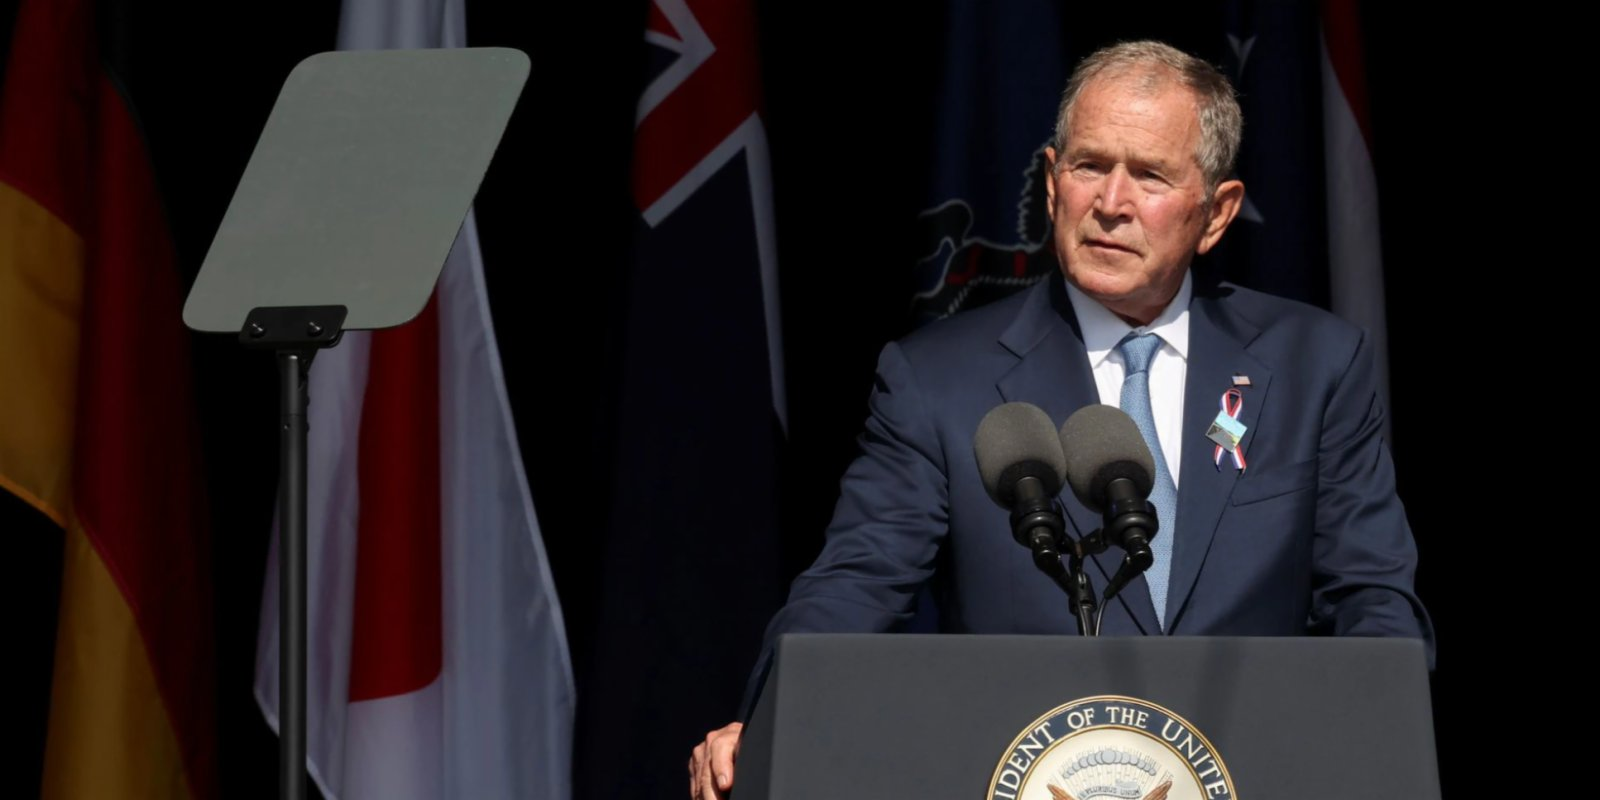 Former US President George W. Bush warns against domestic extremism on 9/11 anniversary